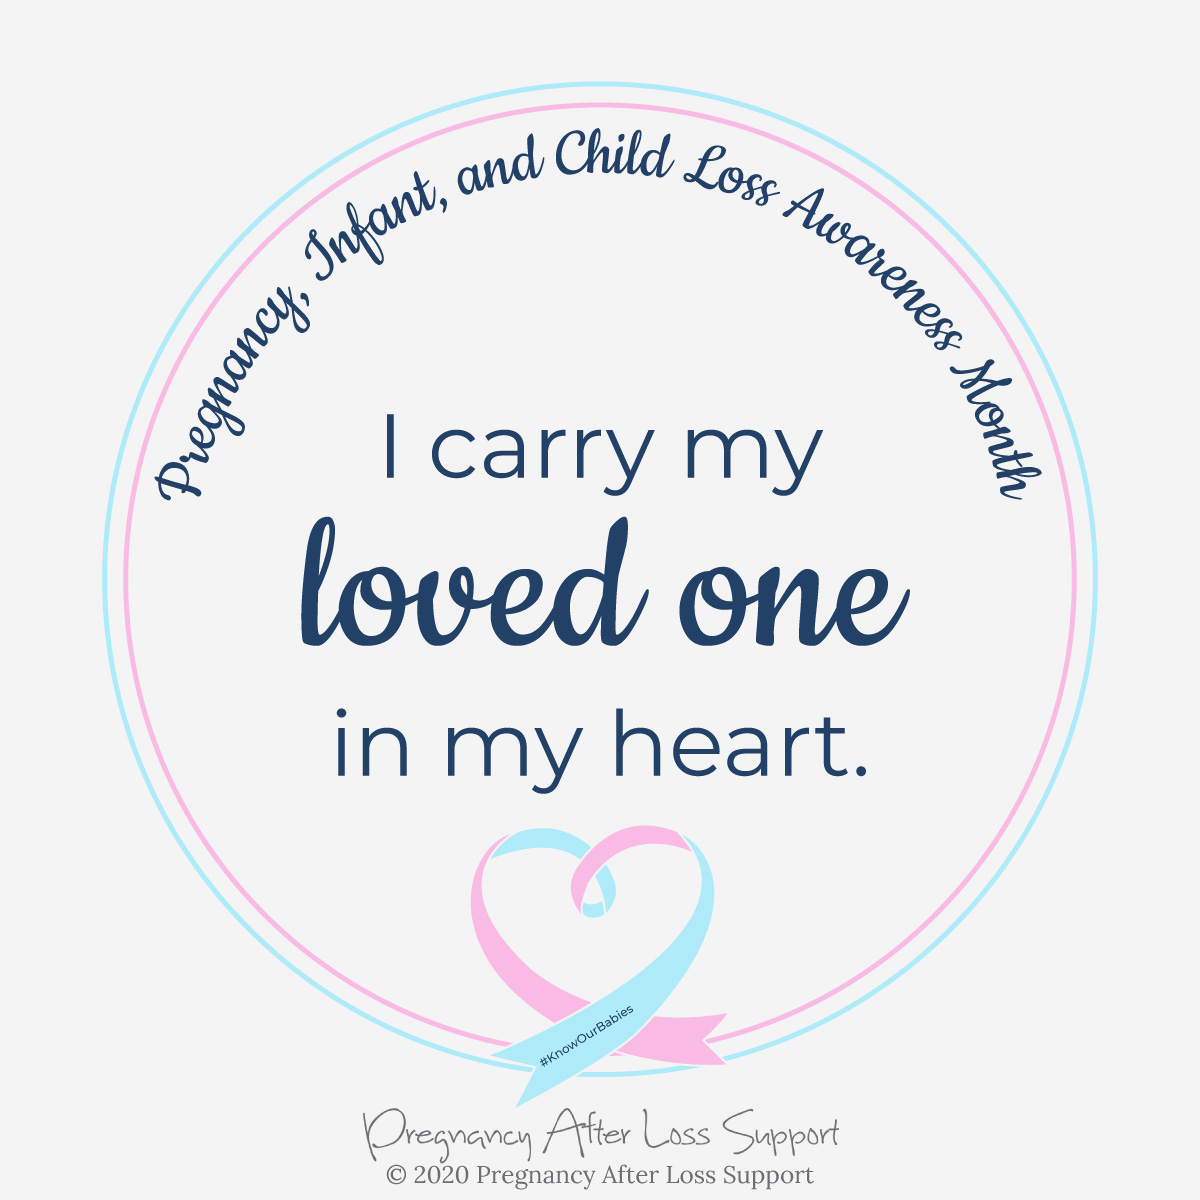 I carry my loved one in my heart - Pregnancy, Infant, and Child Loss Awareness Month